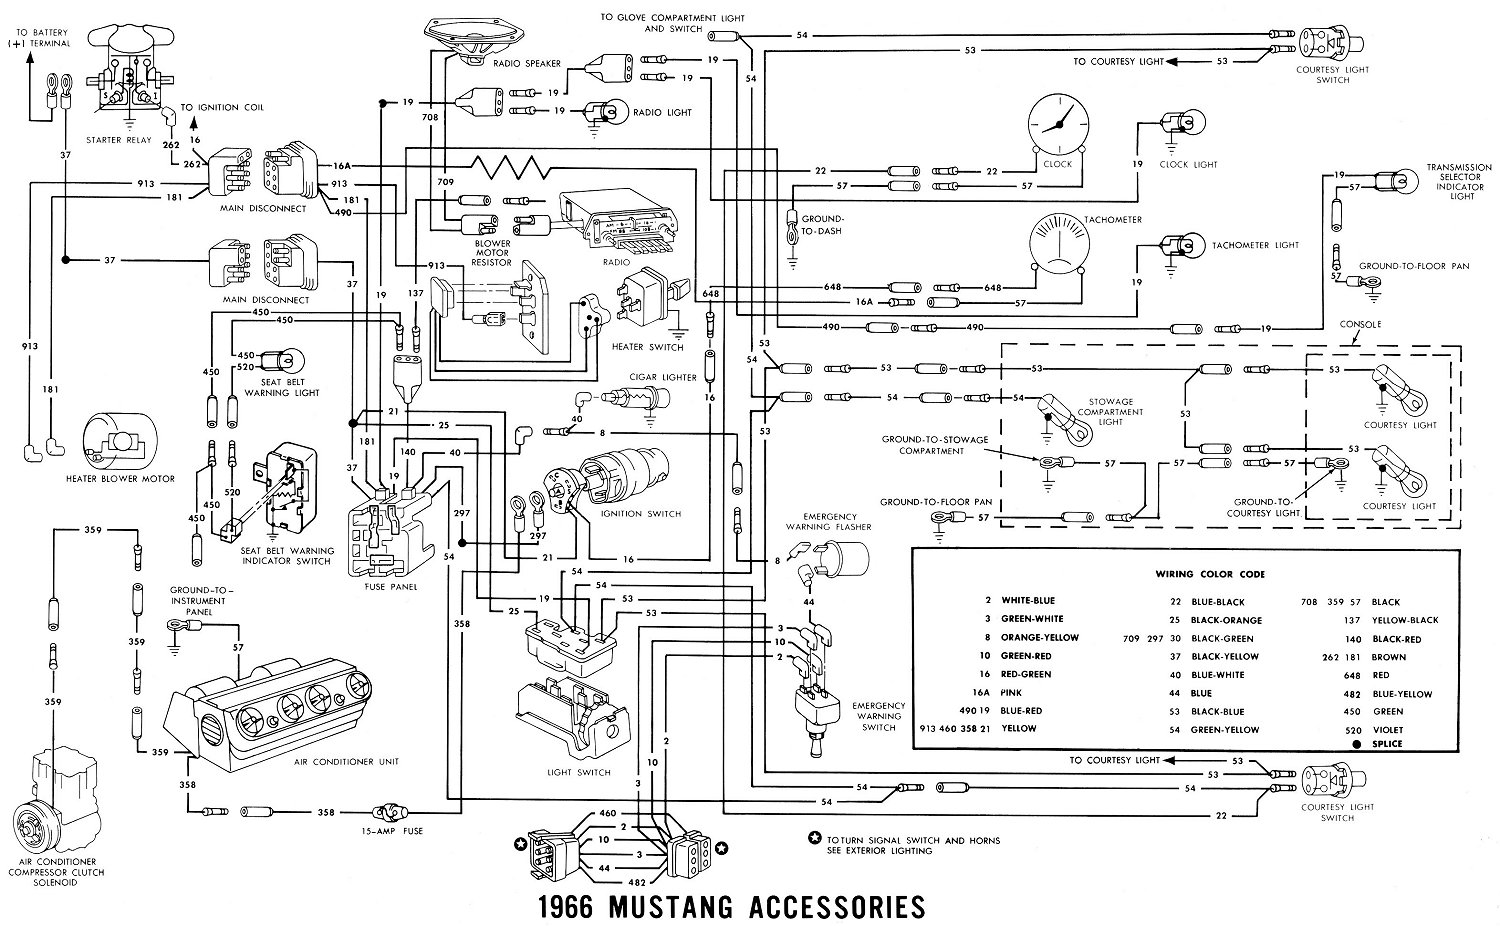 ... Ford Mustang Wiring Diagram. on acura tail light wiring diagram